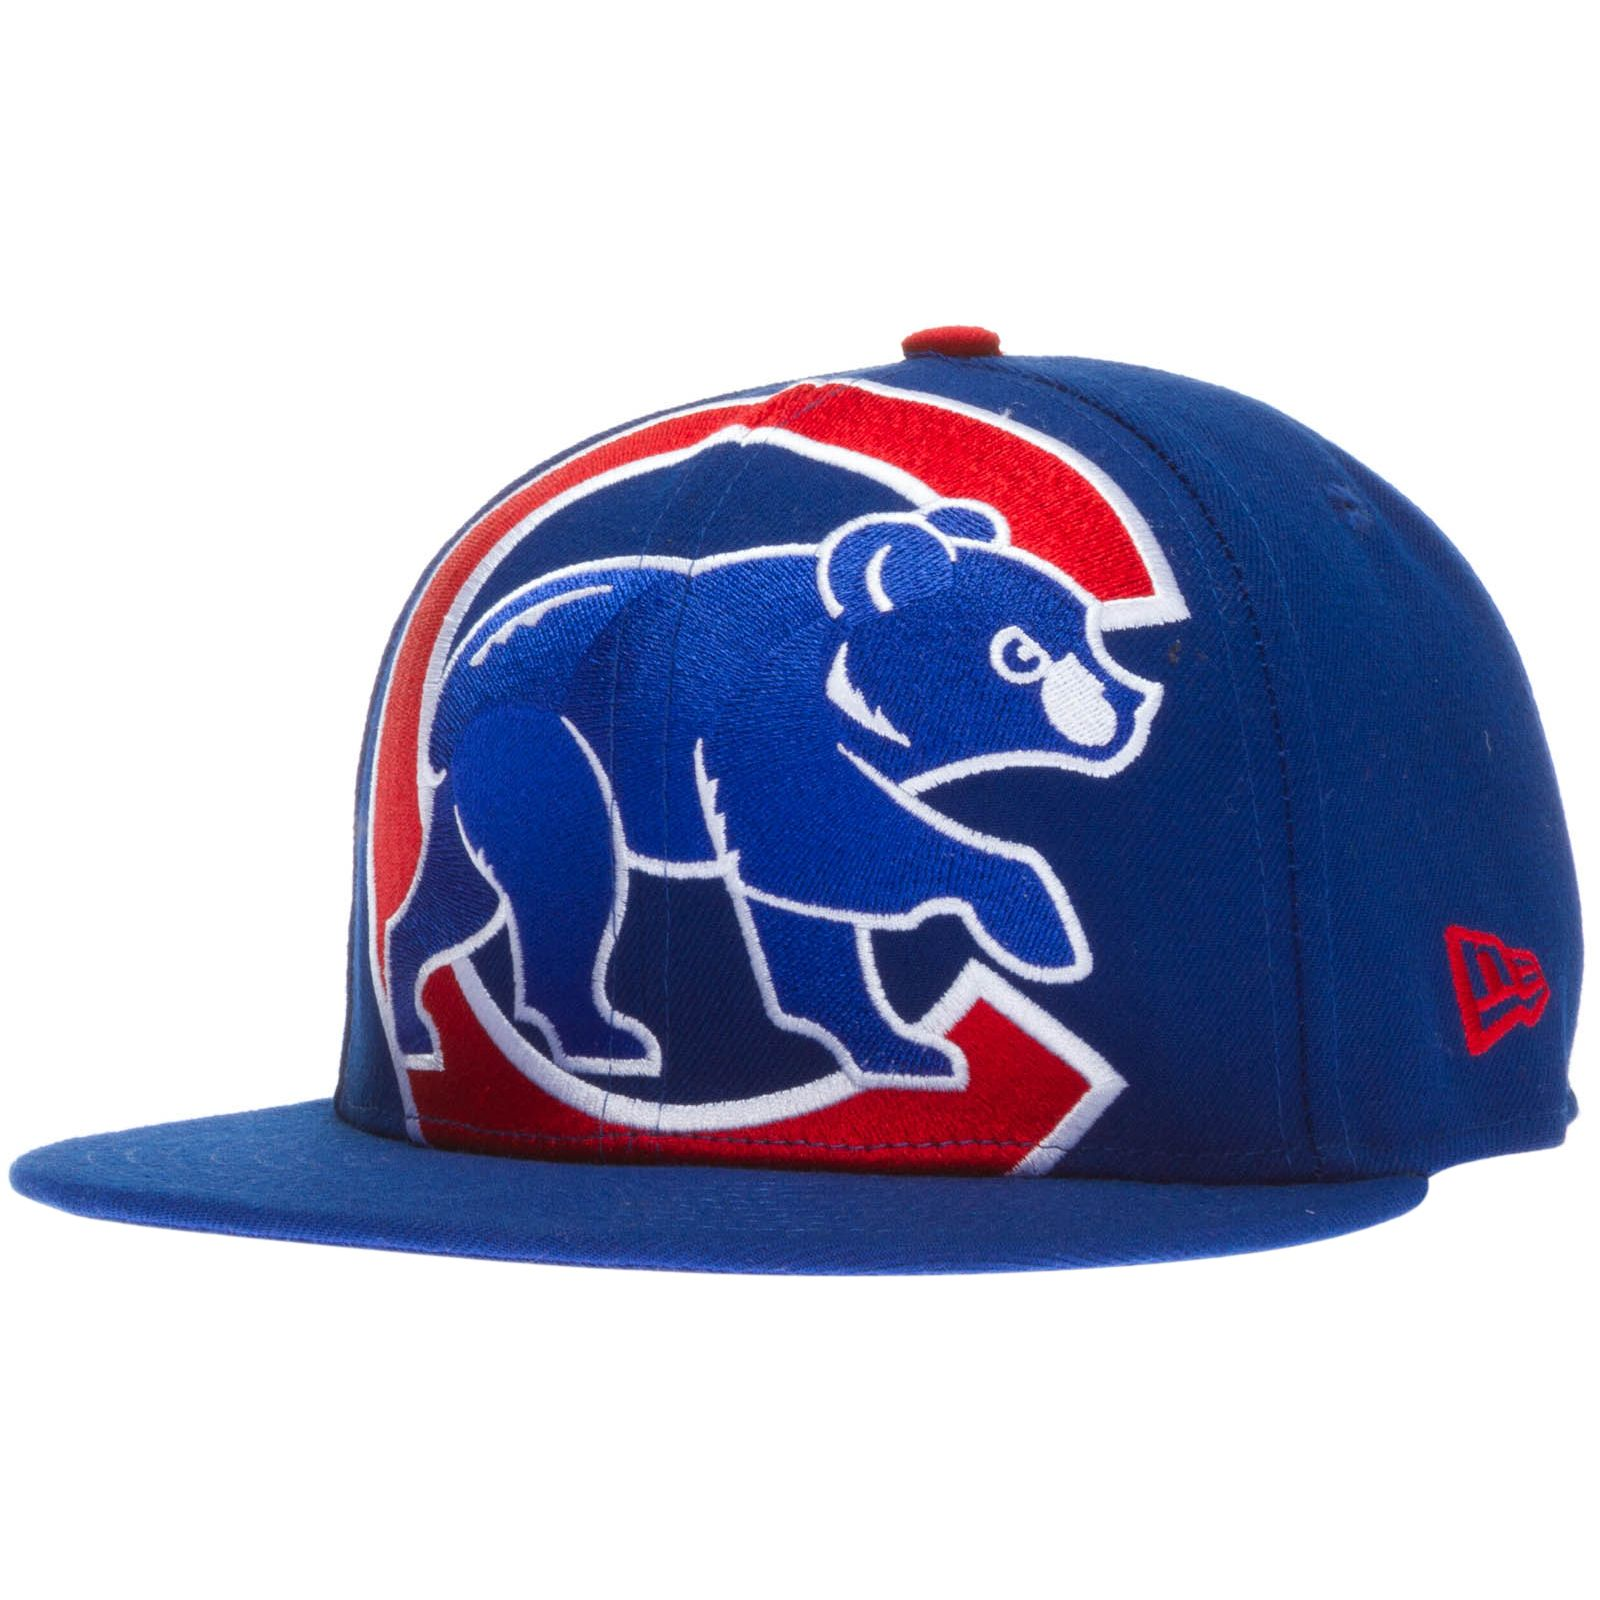 259d347f7 Chicago Cubs Royal Blue Extra Large Crawl Bear Logo Fitted Flat Bill ...